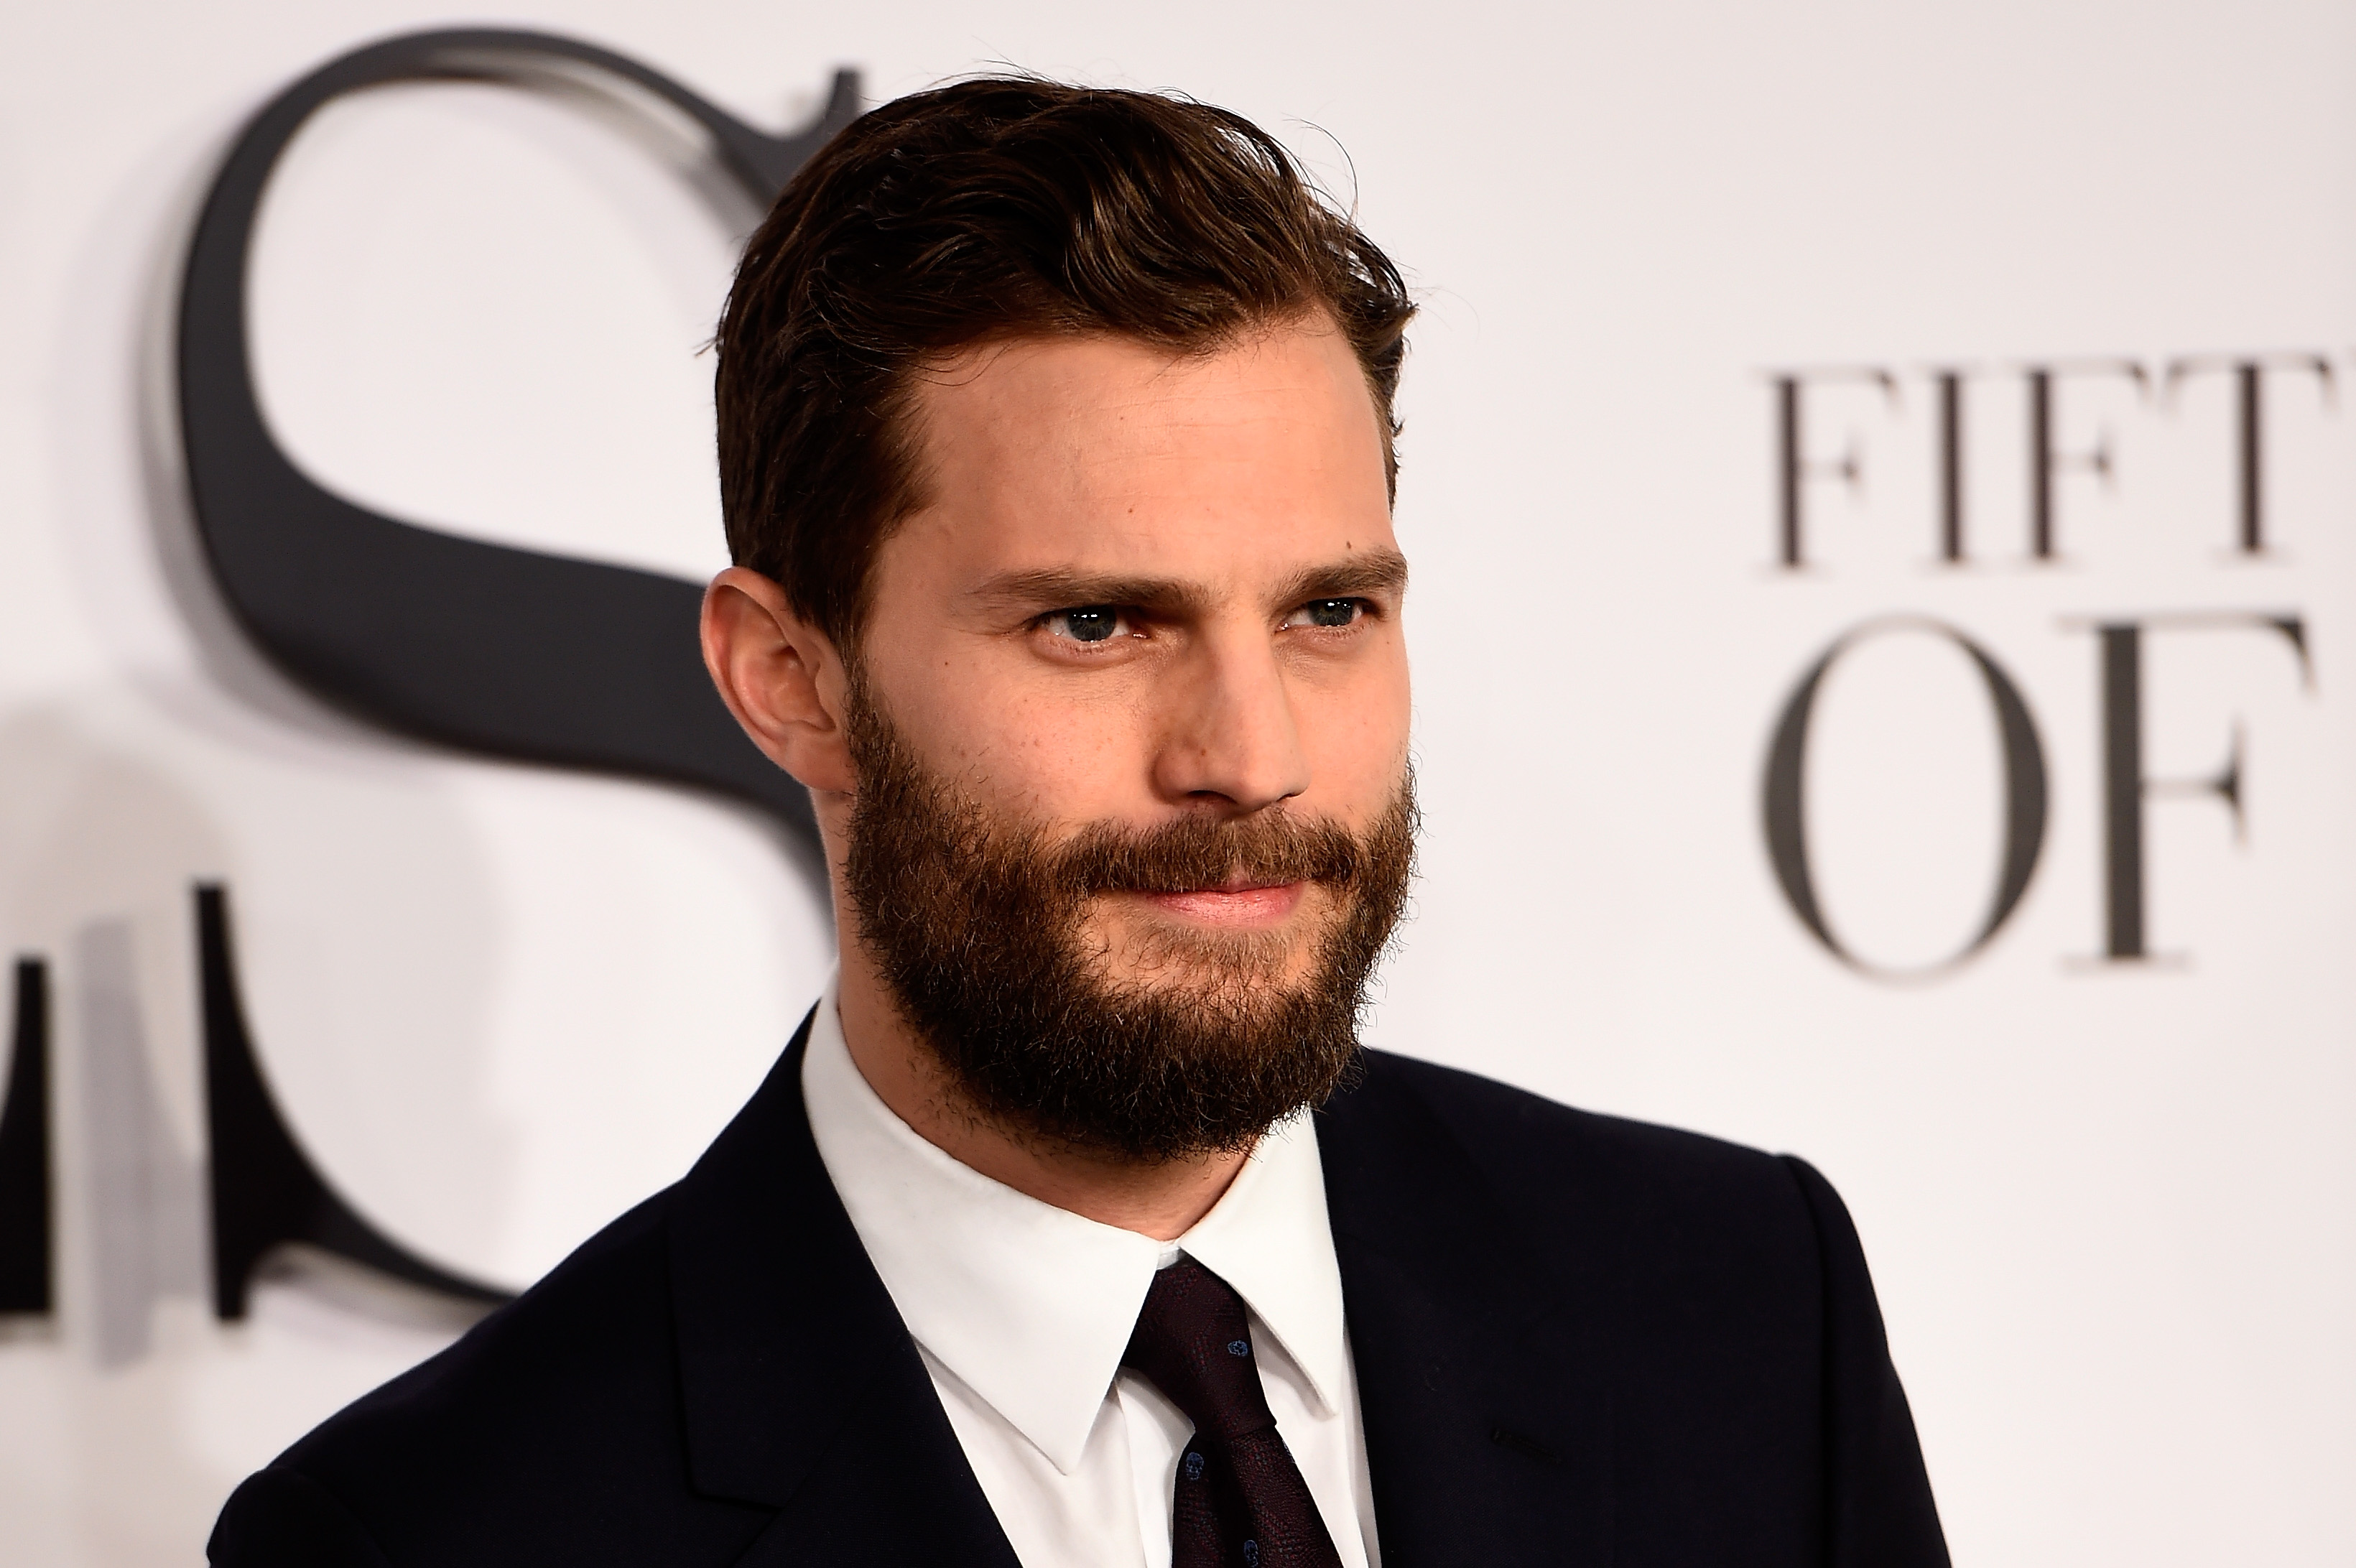 Jamie Dornan is smiling on the red carpet.